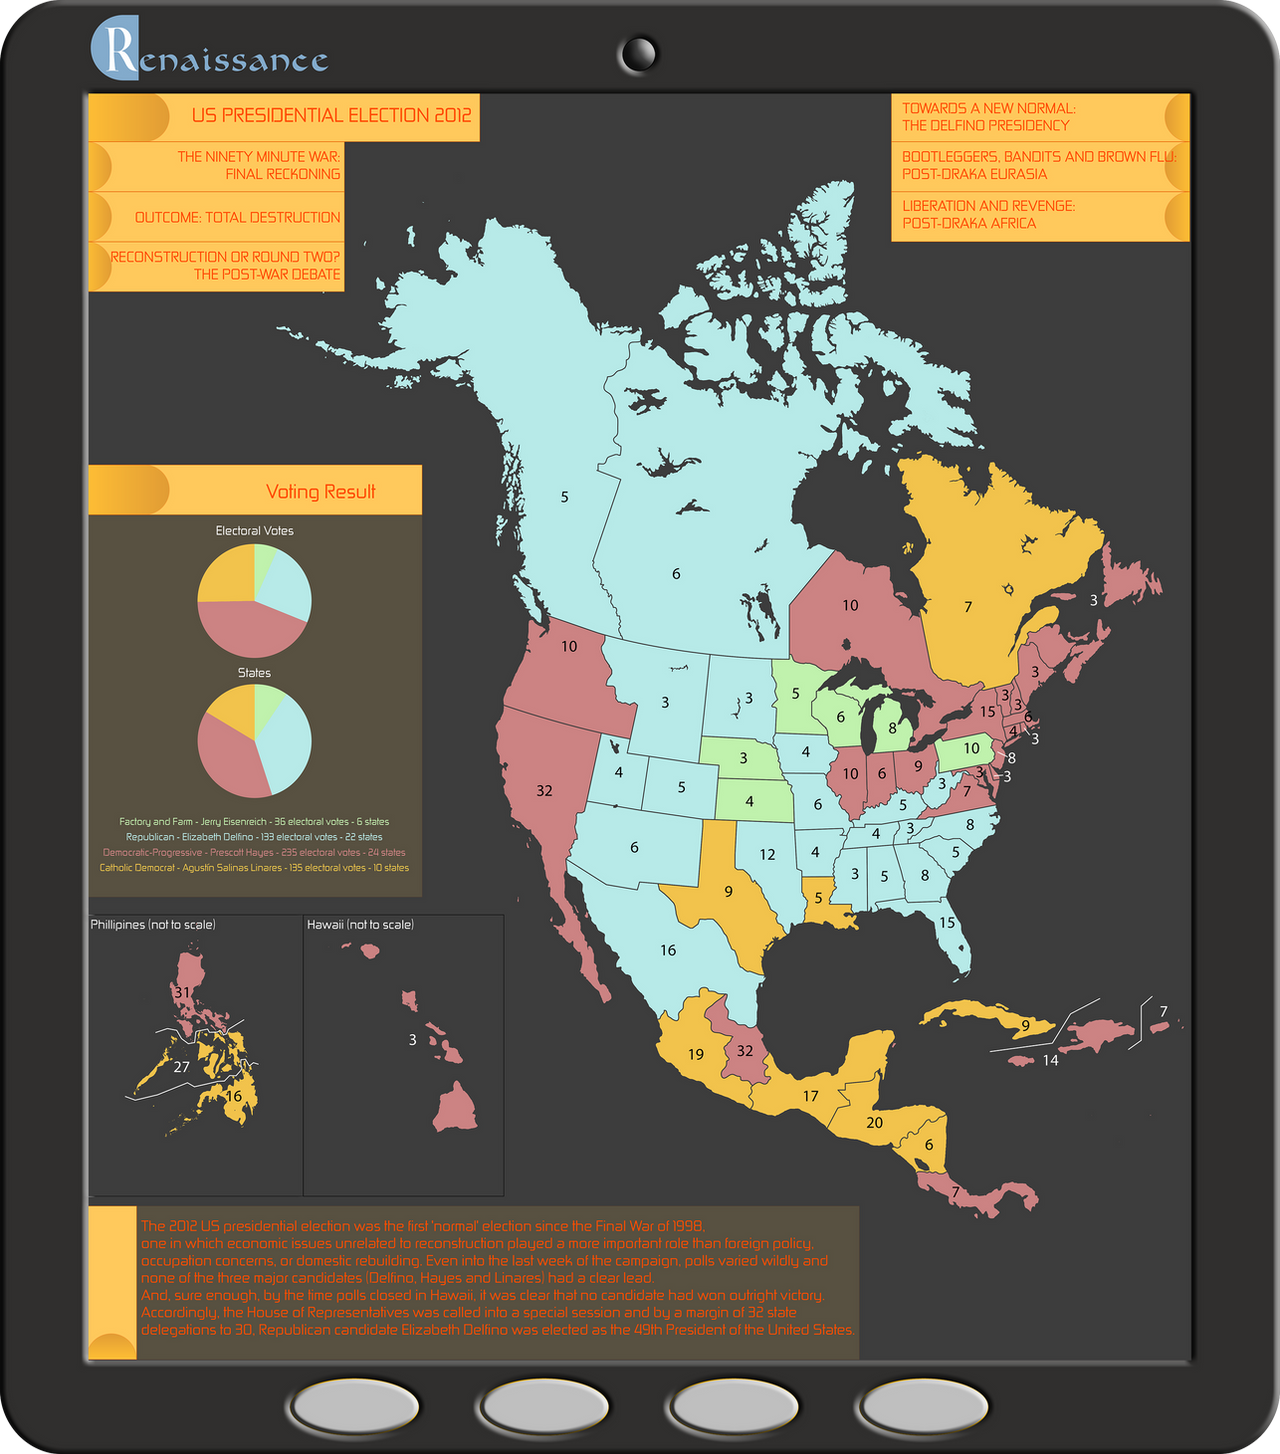 US Presidential Election AH Map By Sapiento On DeviantArt - Us election history map